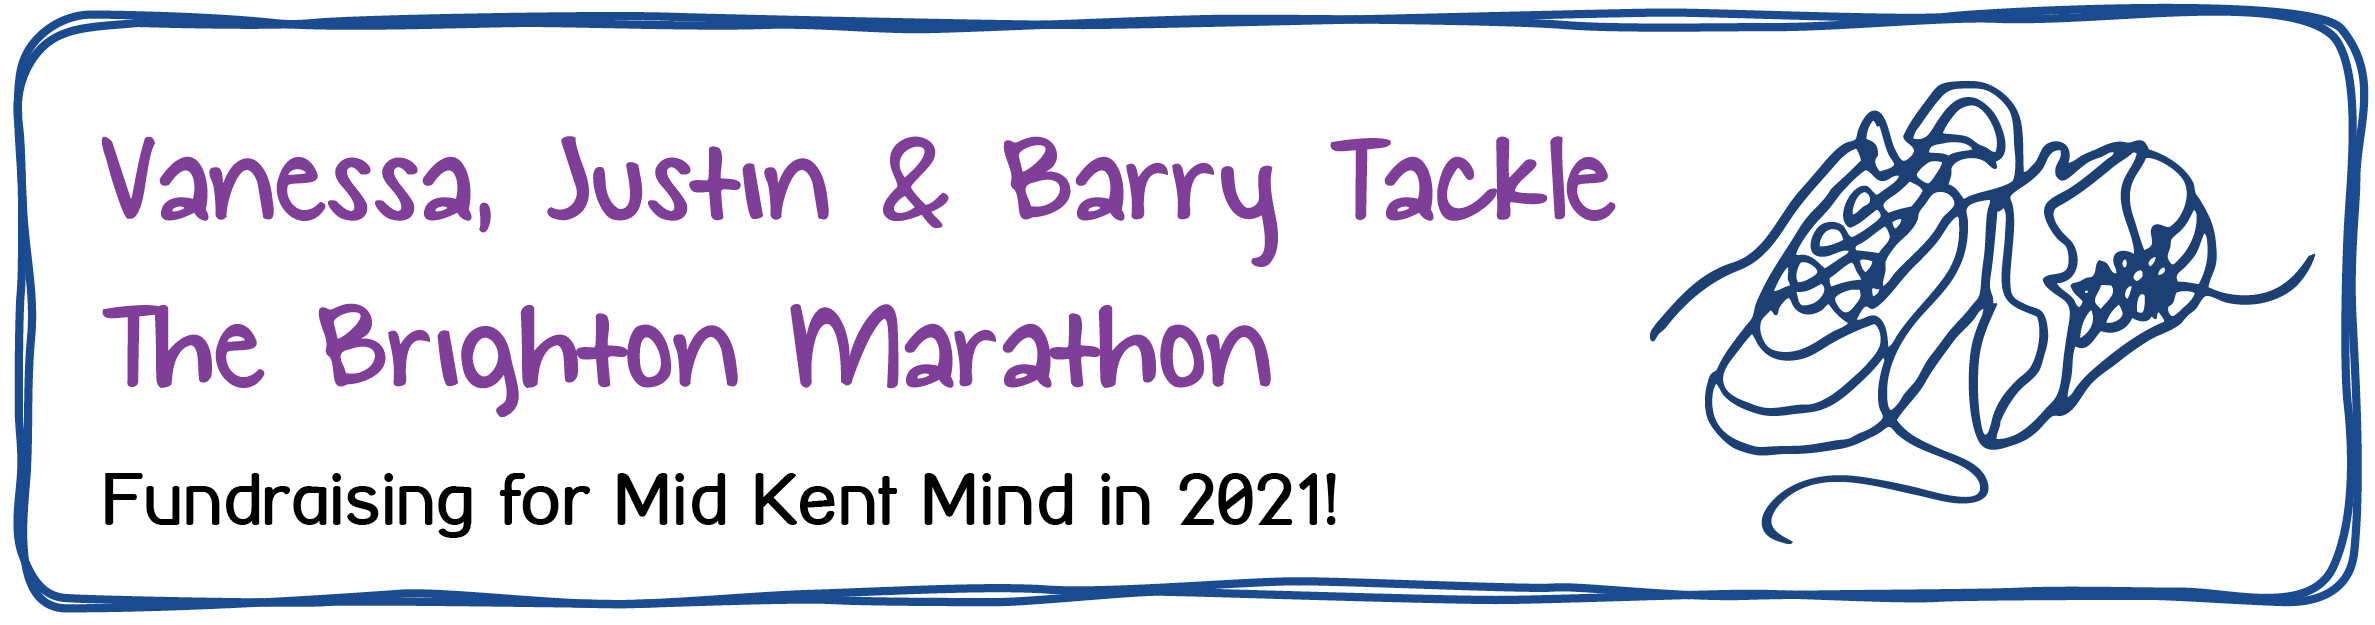 Vanessa, Justin and Barry Tackle The Brighton Marathon. Fundraising for Mid Kent Mind in 2021.